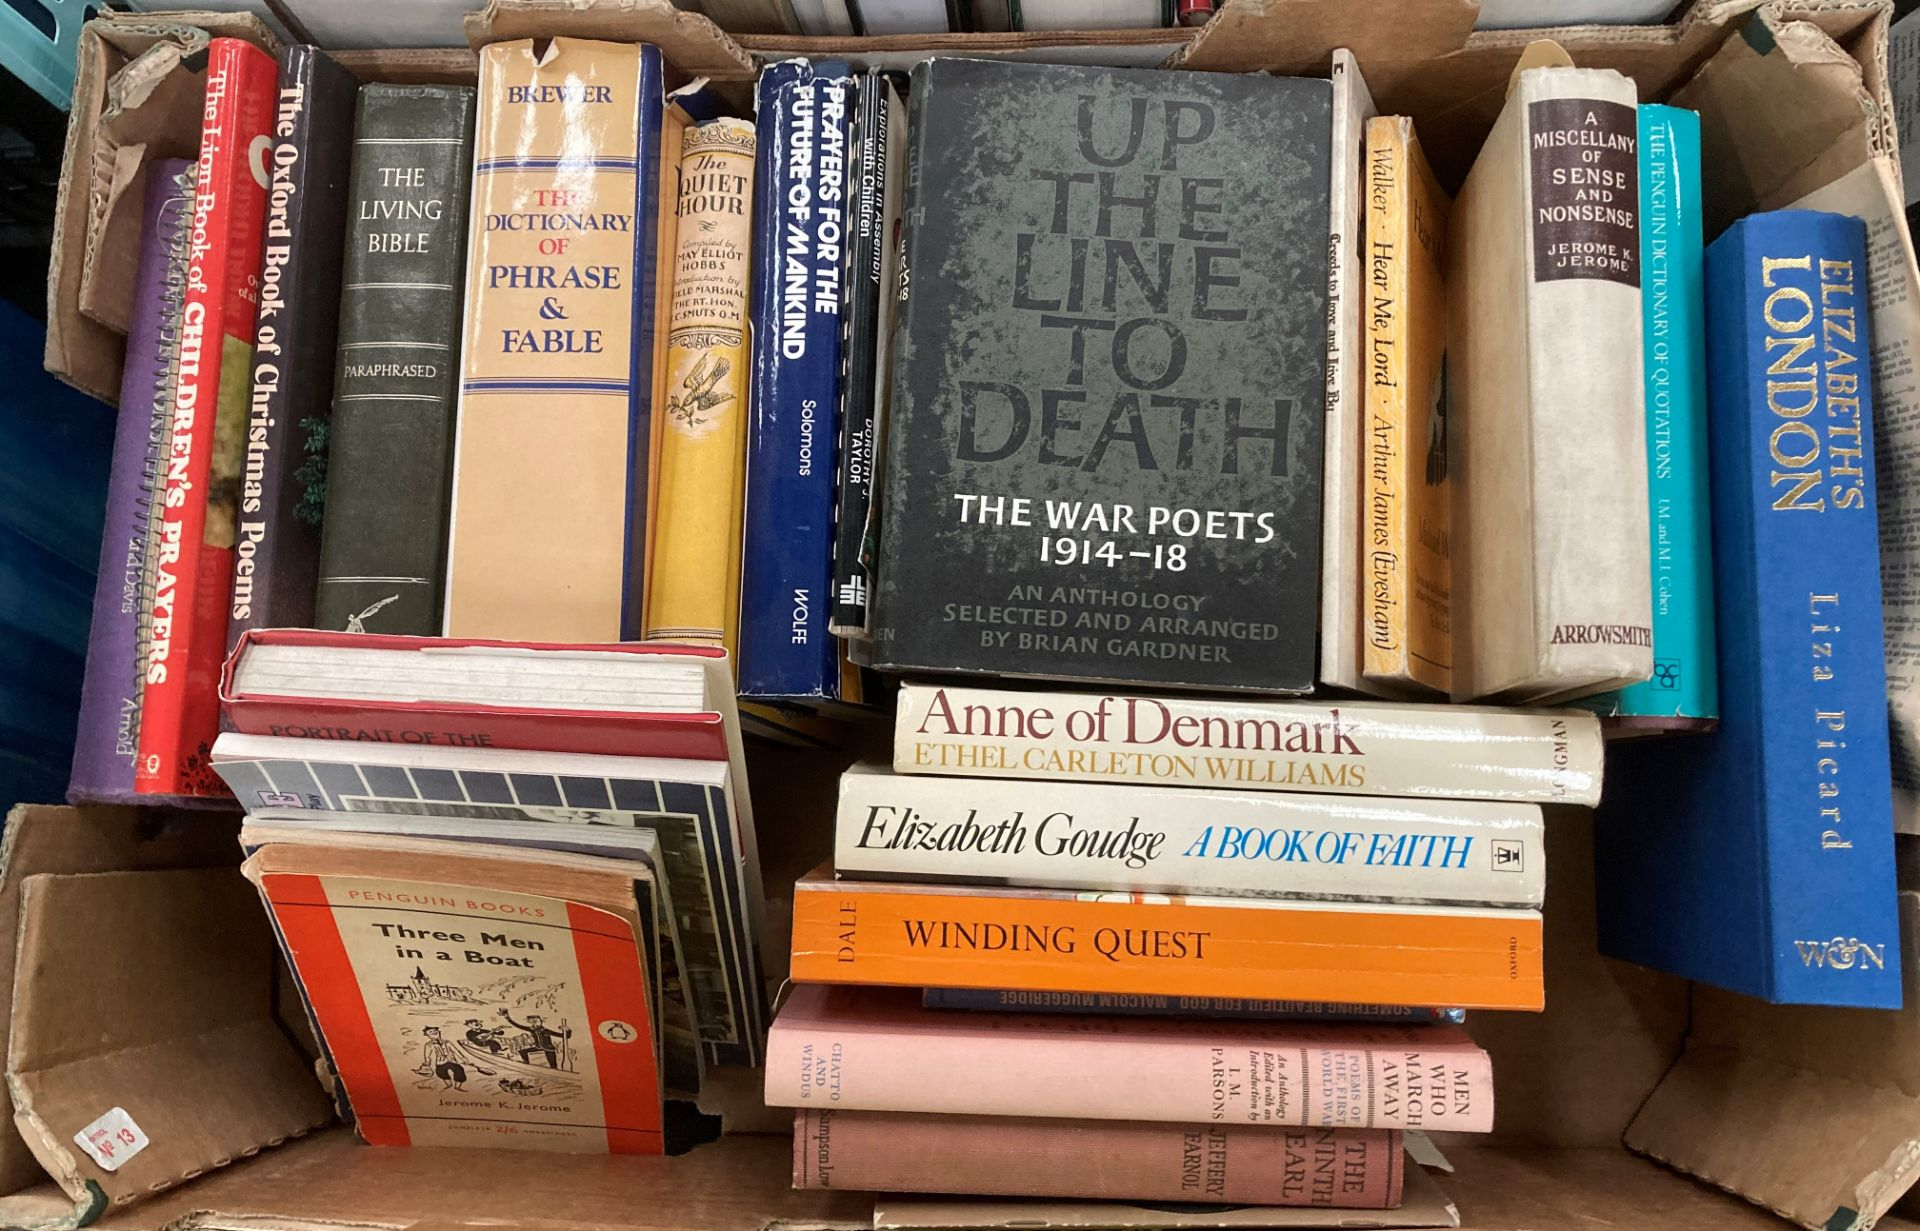 Contents to four boxes books on English Literature, poetry, biographies, religion etc. - Image 4 of 5